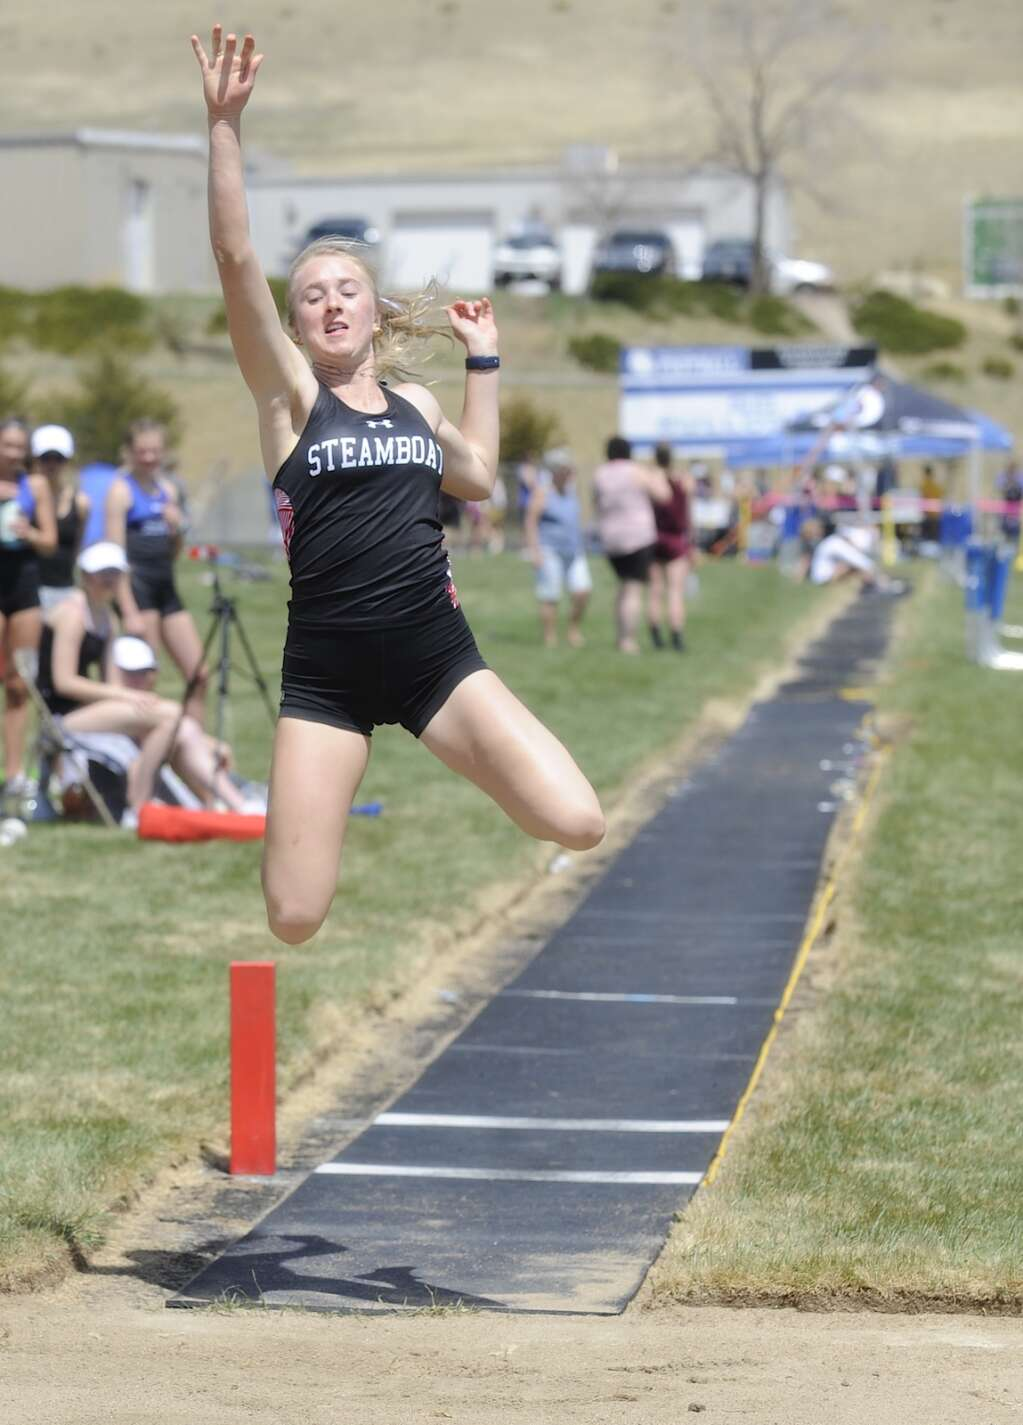 Steamboat Springs senior Marcada Baker competes in the long jump finals at the Clint Wells Invitational in Craig on Friday. (Photo by Shelby Reardon)